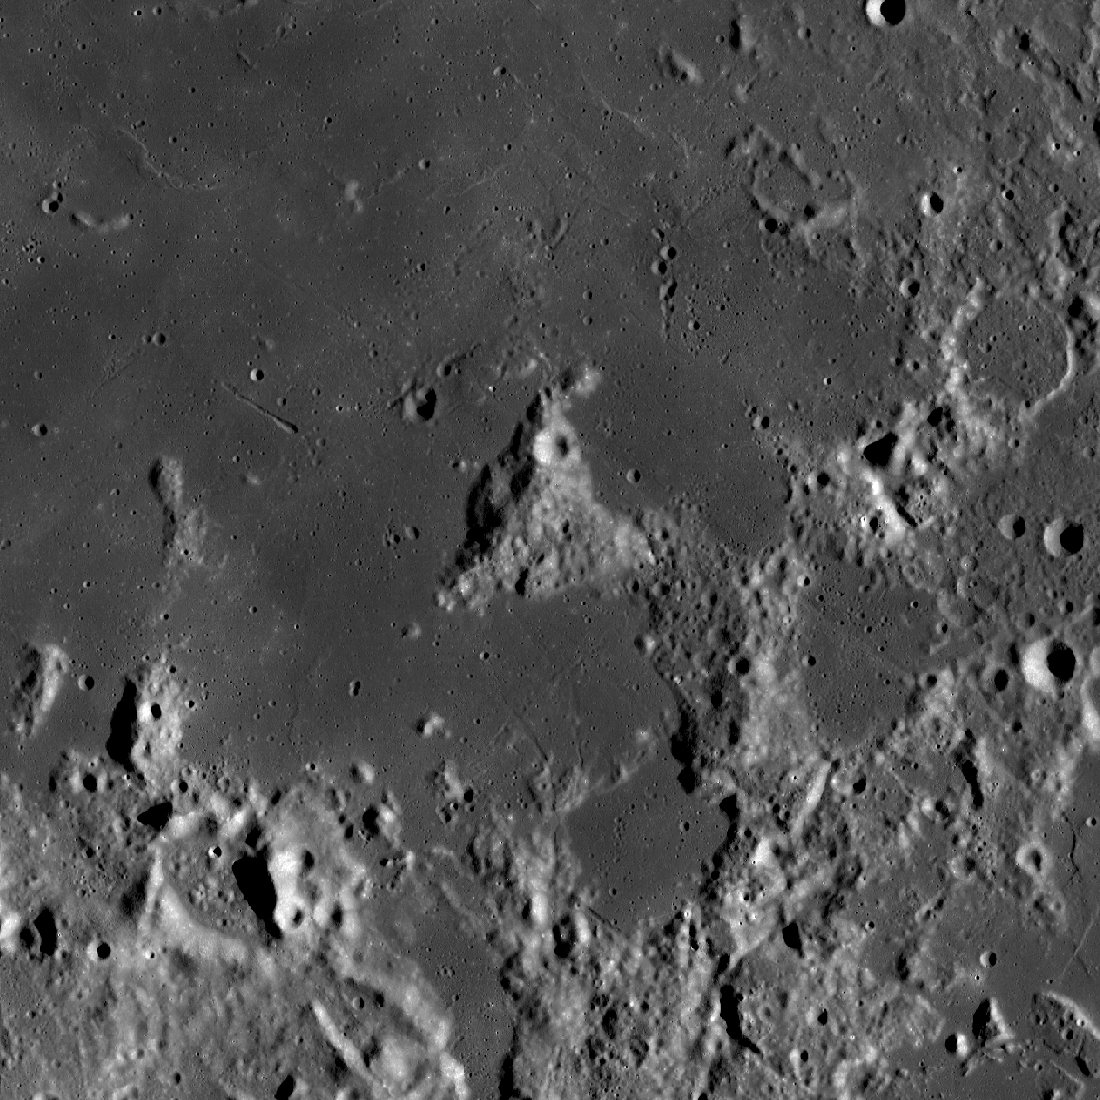 138 km wide view, centered on Mt. Marilyn